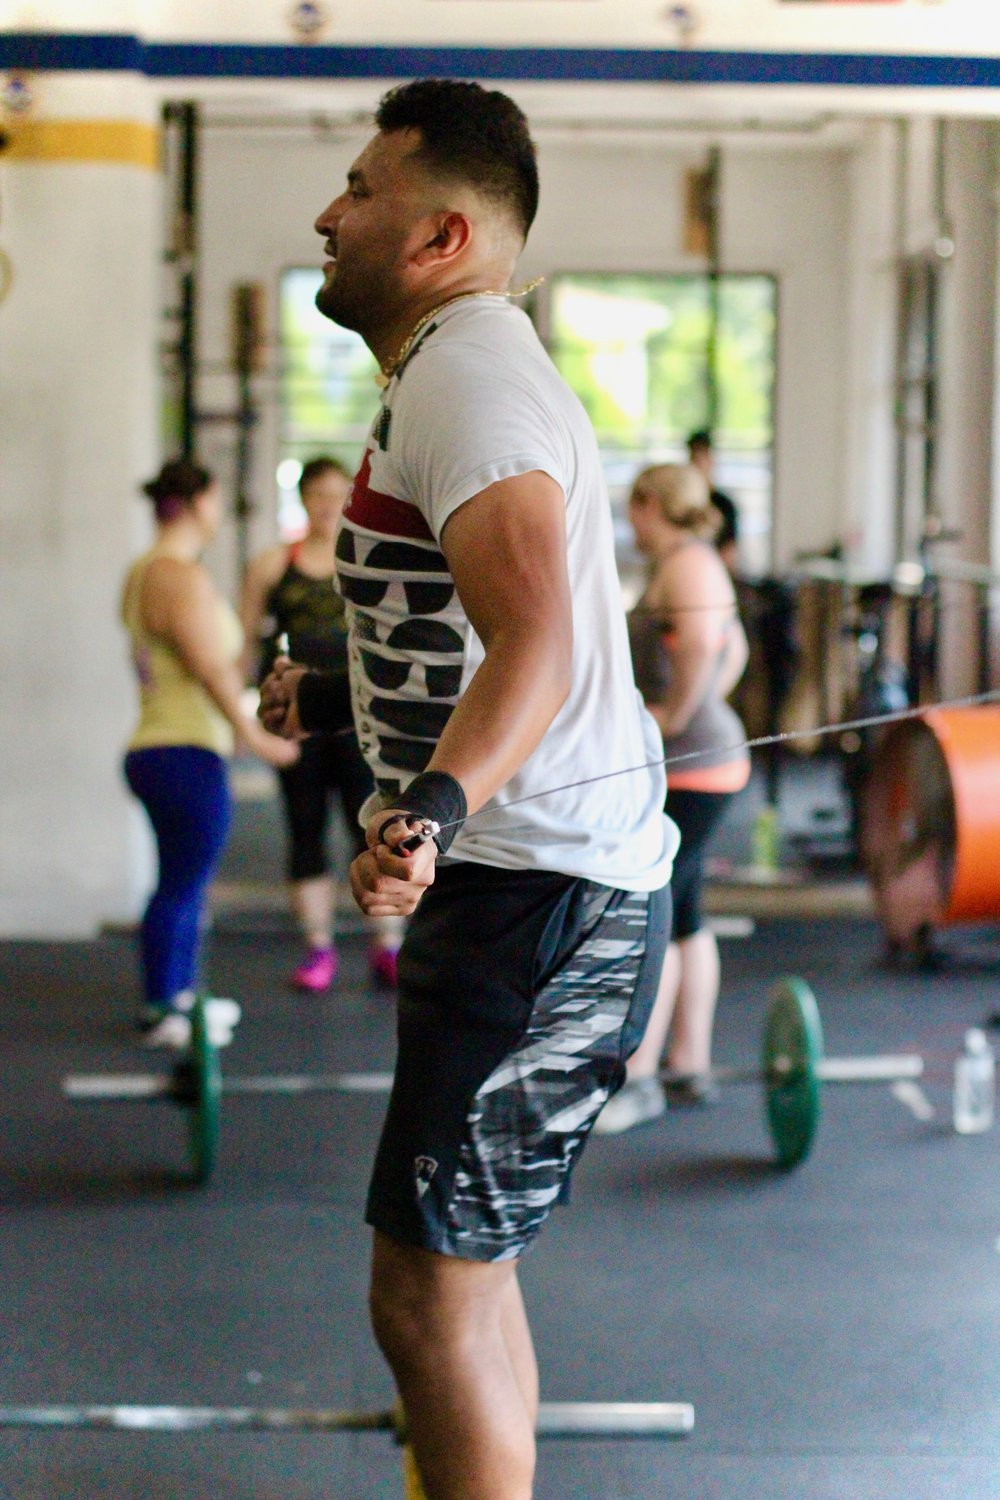 Have you met PVCF athlete, Lenin Torres yet? Yesterday was his three month anniversary with us! He's trained four to five times a week since he joined. Now, that's quite the fire to train!